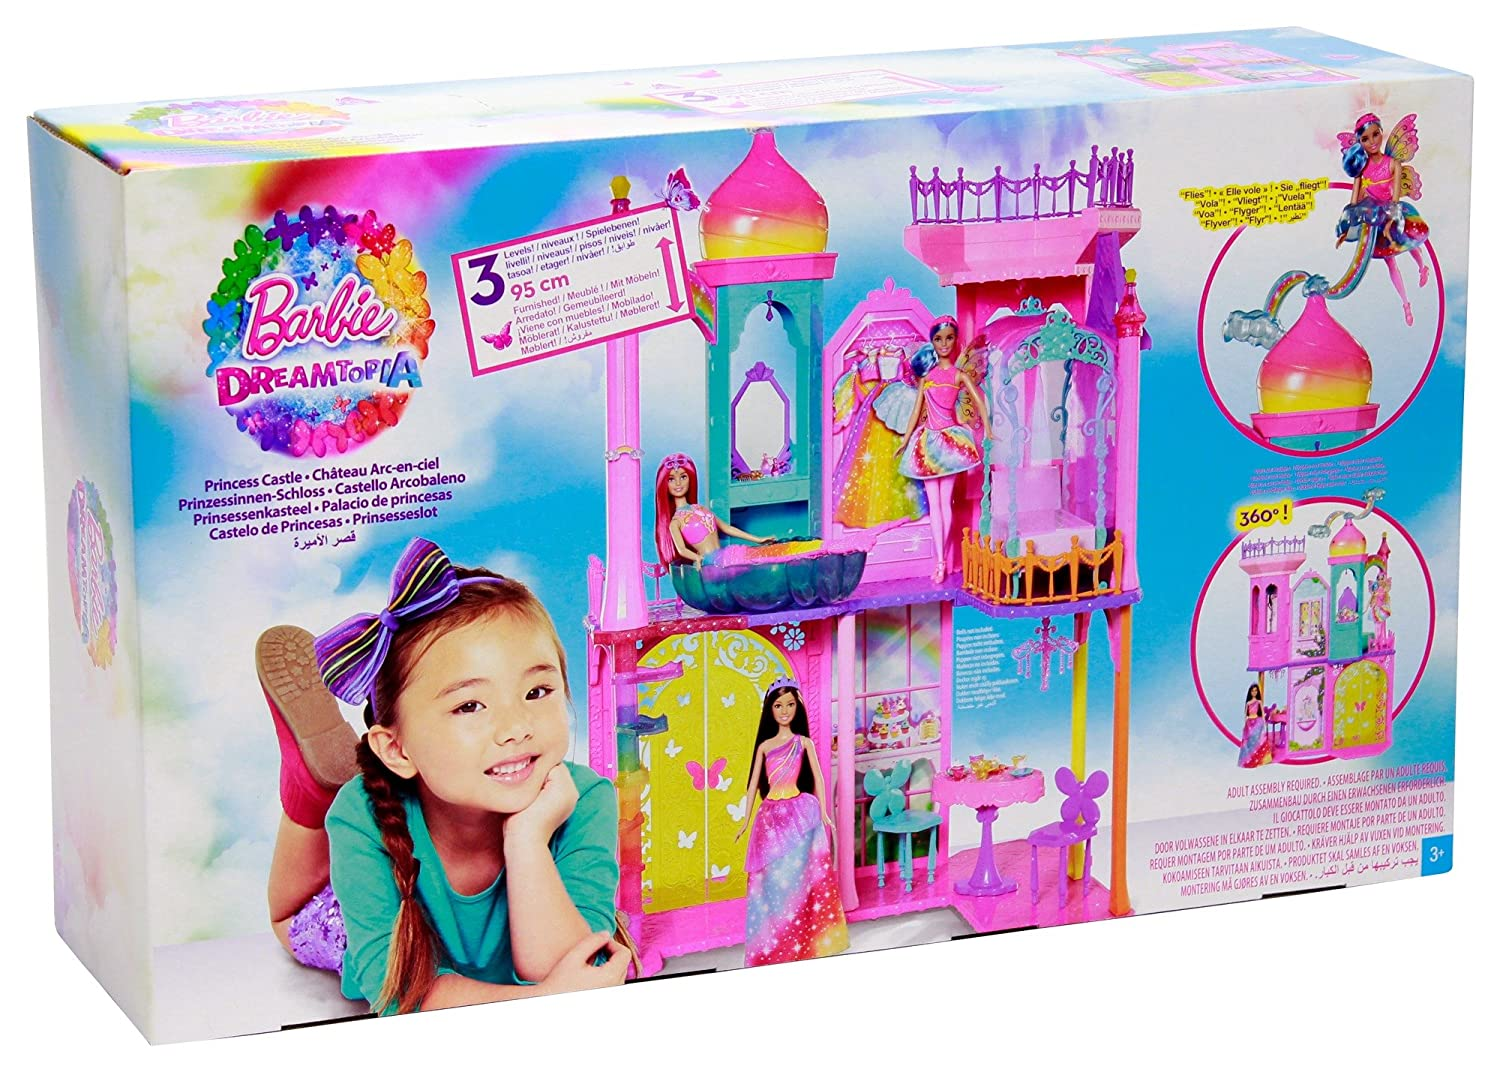 What Barbie Playsets Will Girls Want This Year